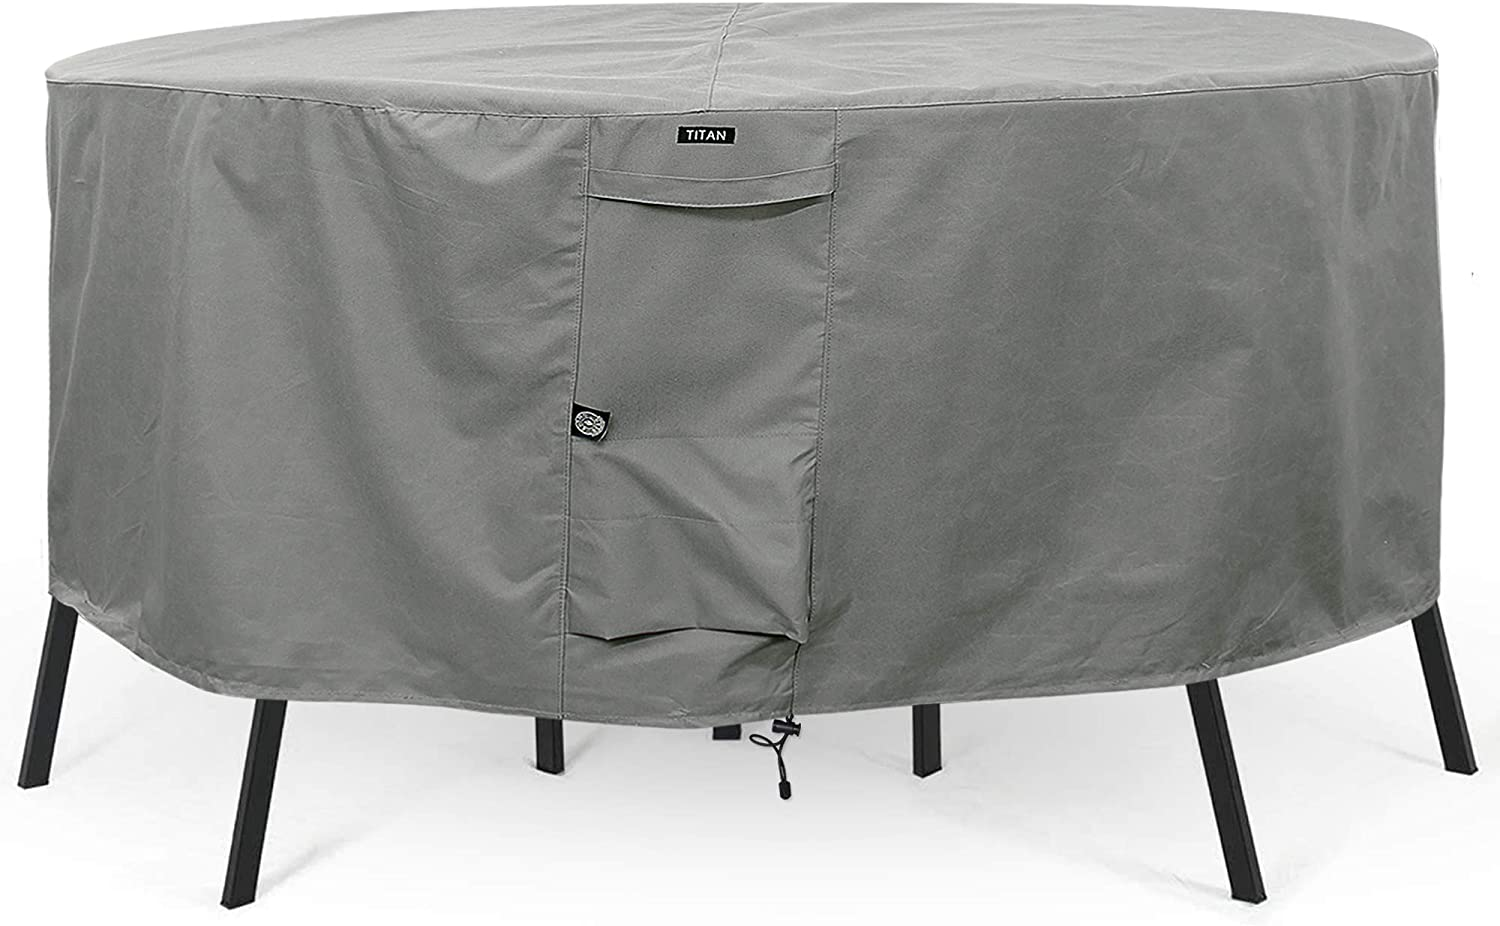 round patio table chair set cover durable water resistant outdoor furniture cover